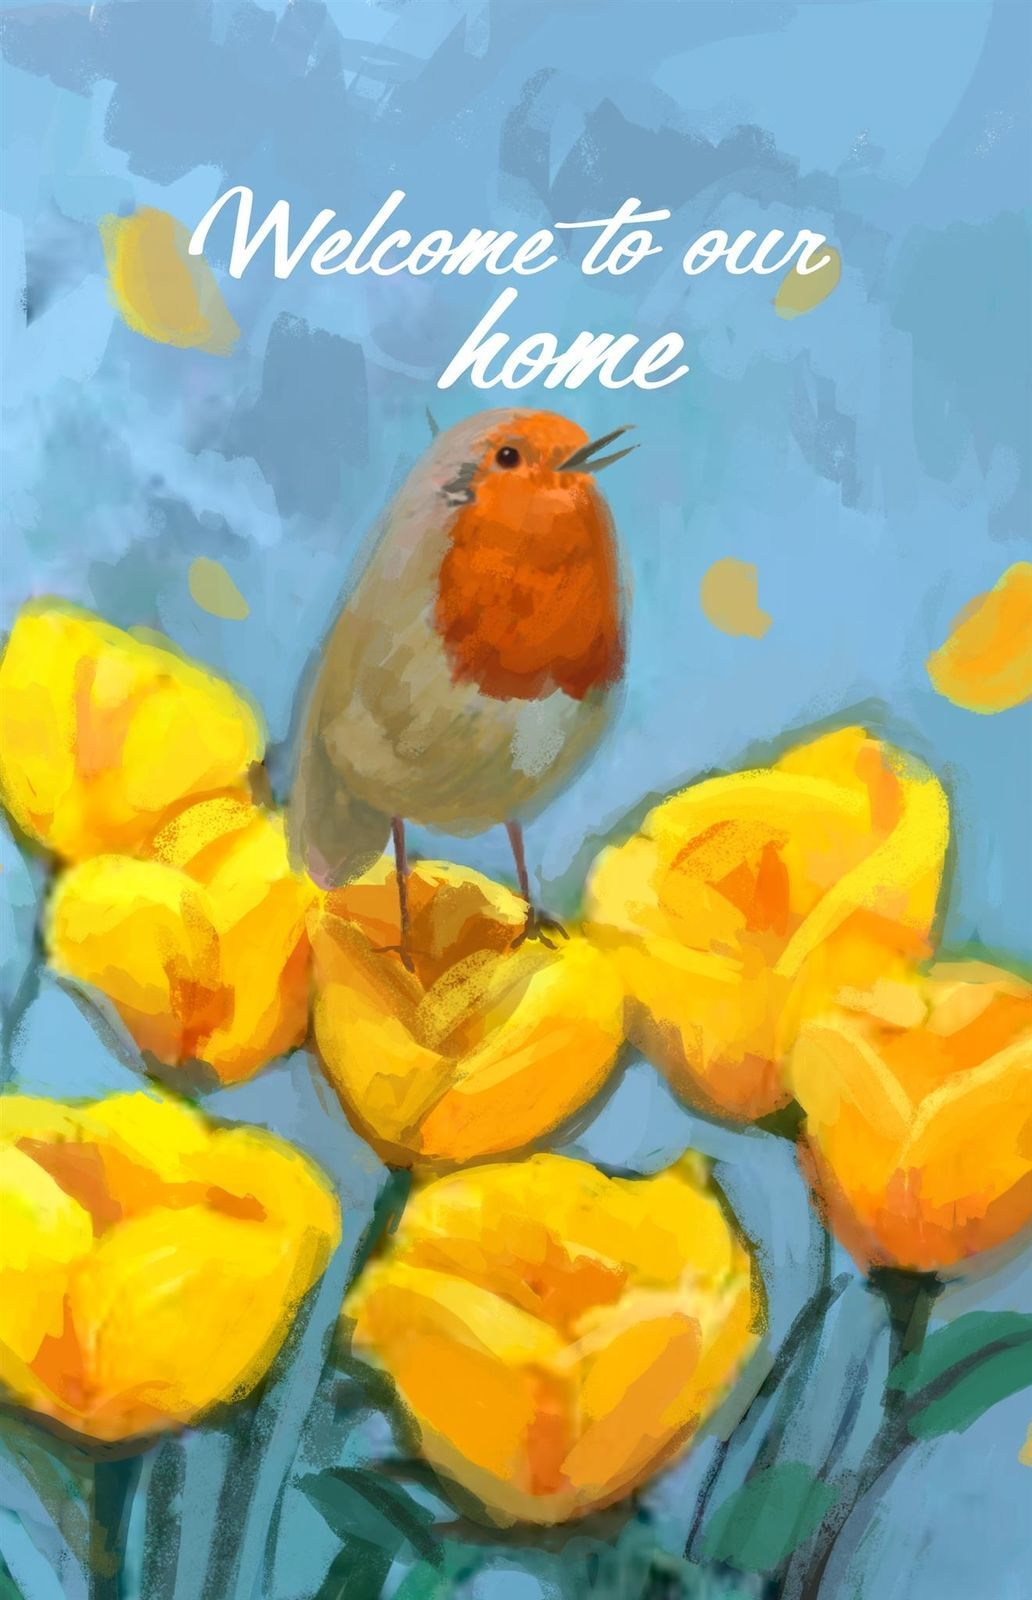 Welcome To Our Home Double Sided Garden Flag Emotes Bird & Flowers Banner Decor - $10.99